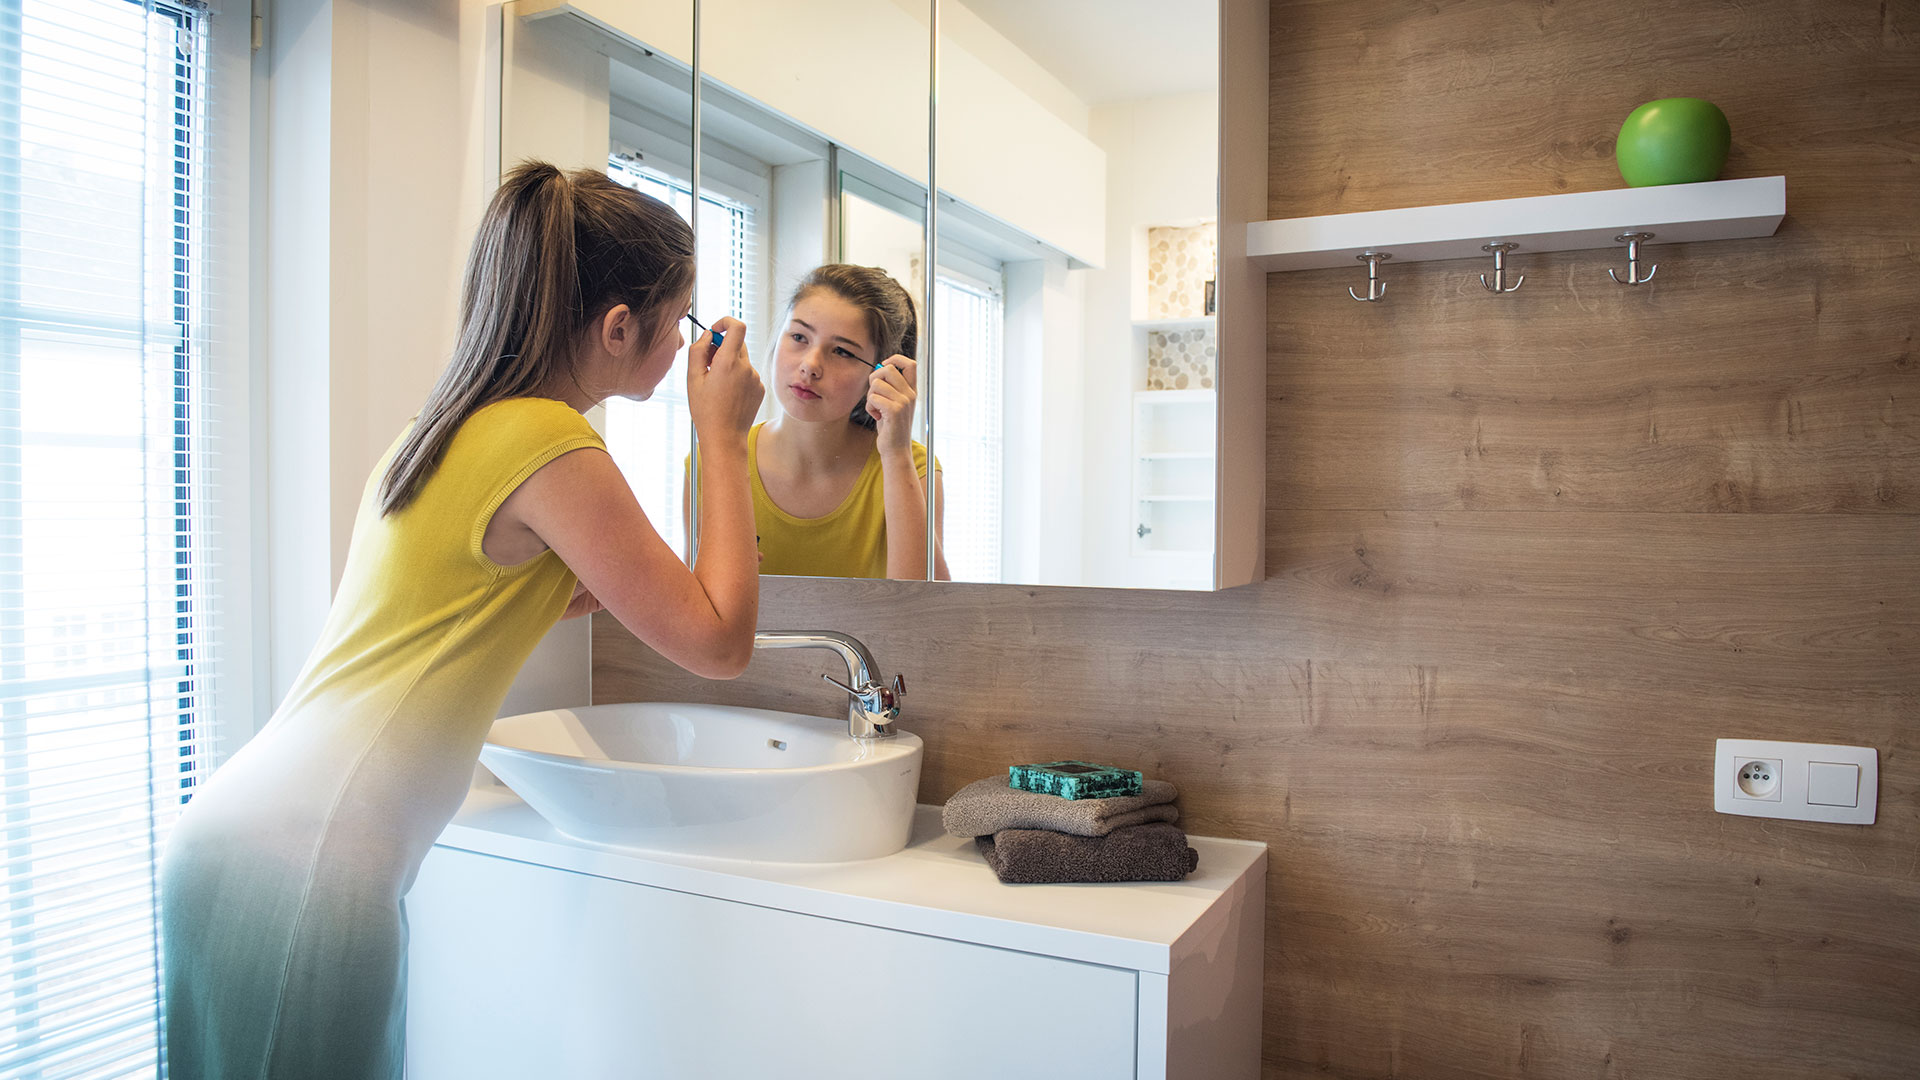 Renoconcept optimises space in your bathroom renovation. Ask for advice!